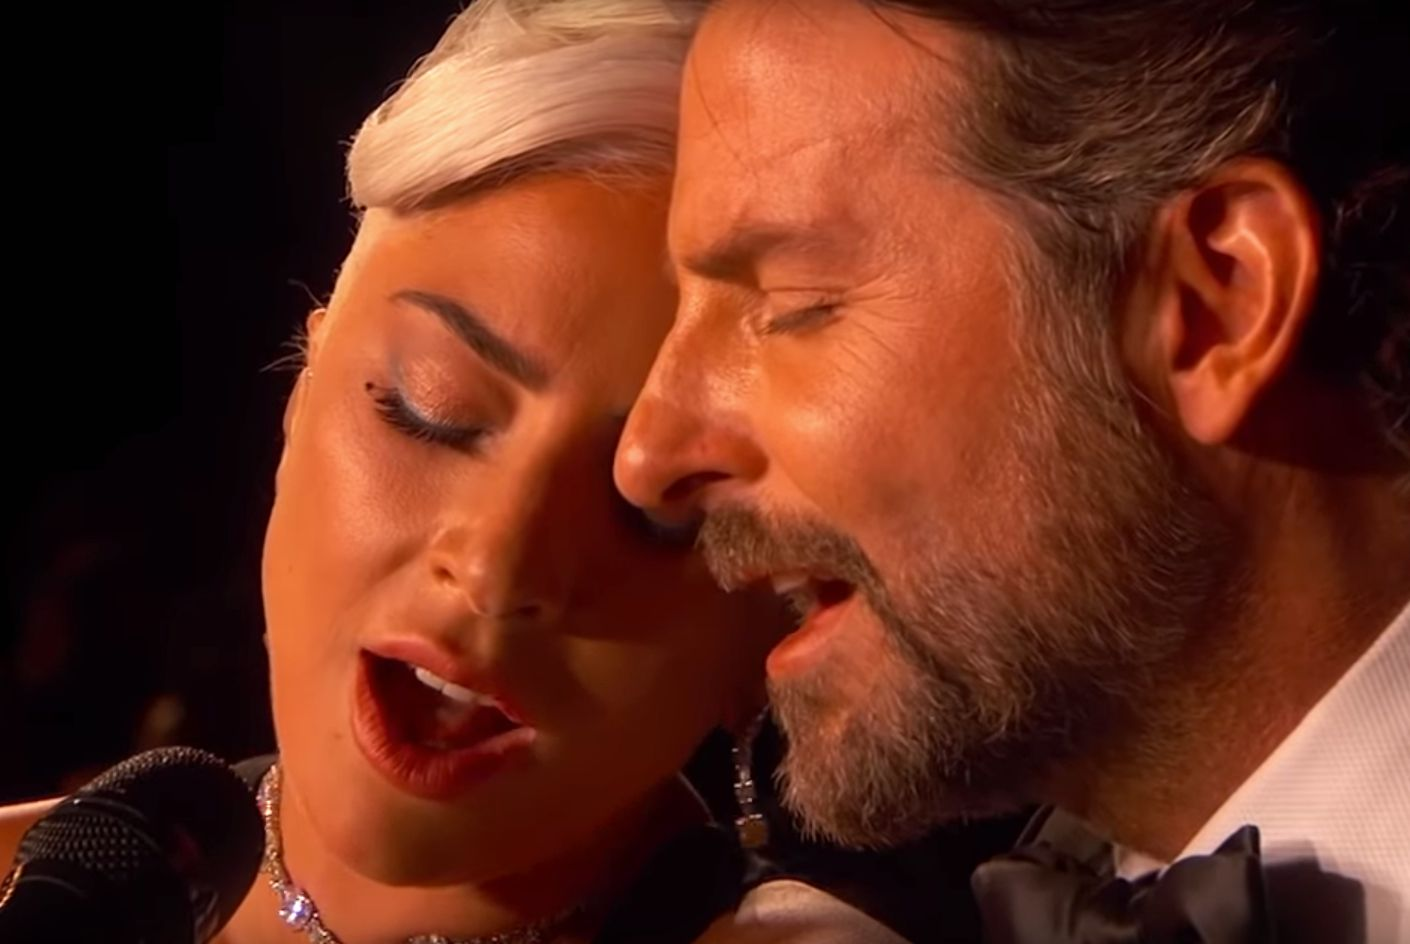 Lady Gaga And Bradley Cooper's 'Shallow' Oscars Duet Gets A Bad Lip